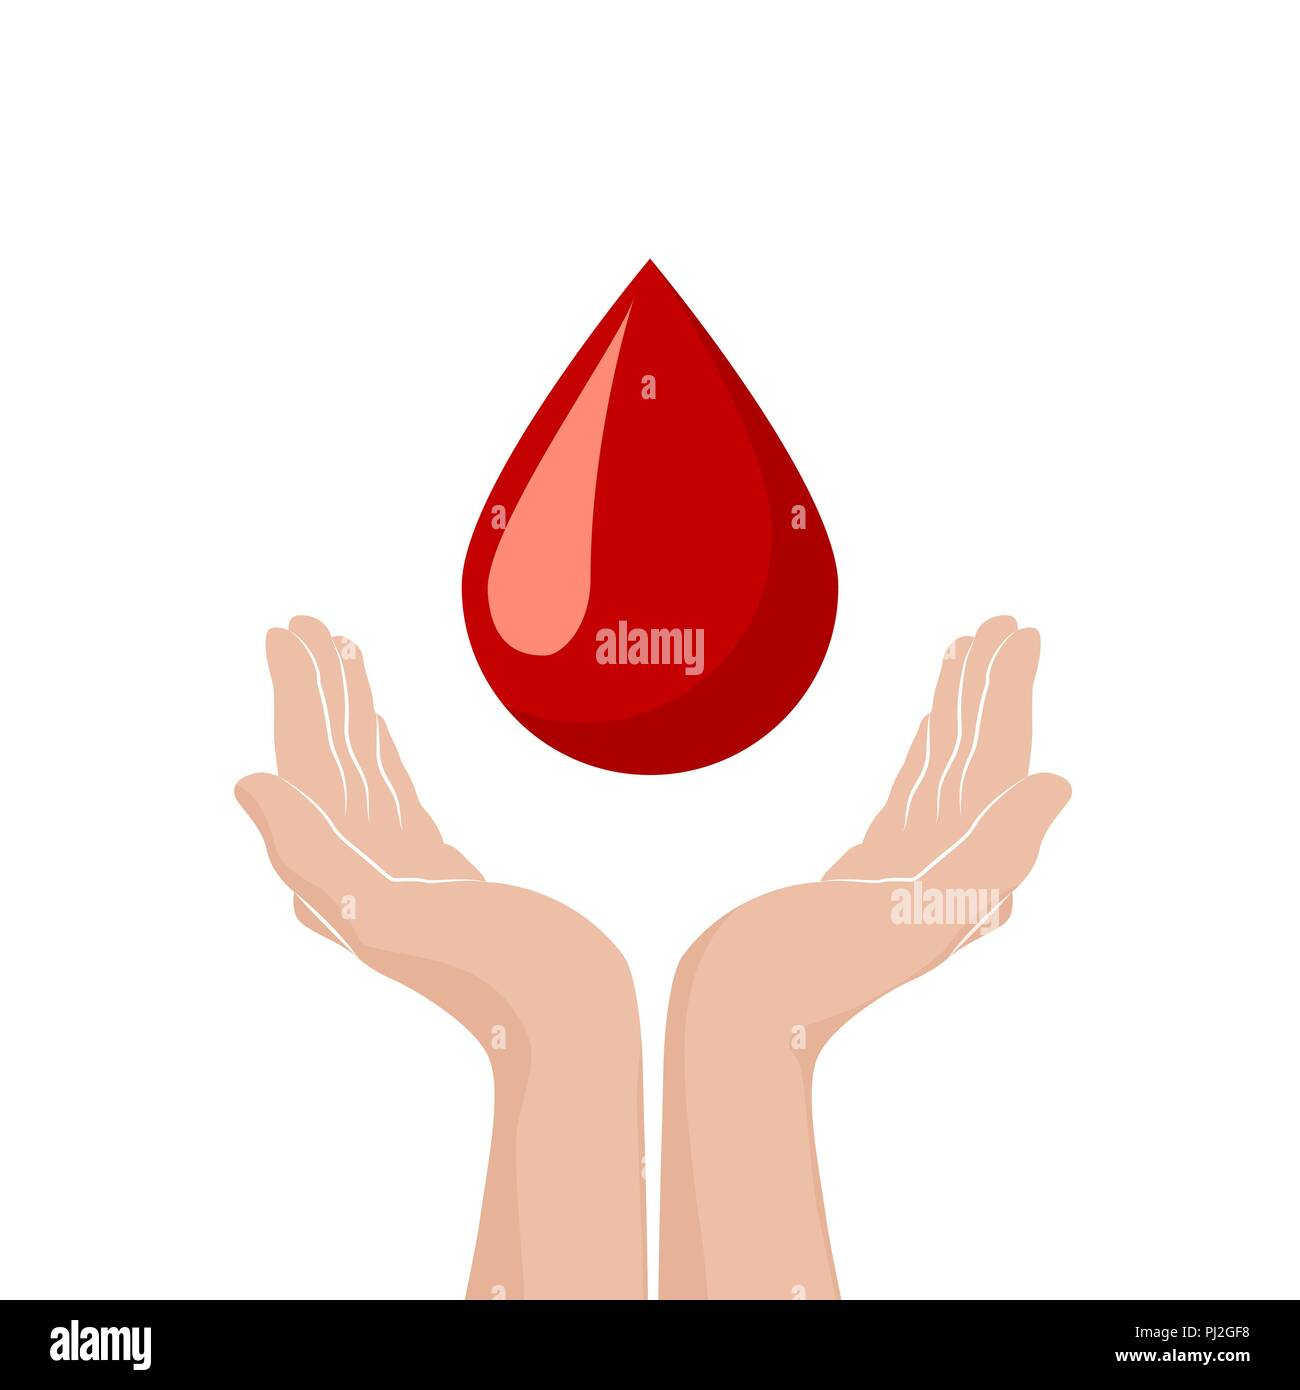 World Blood Donor Day Background: Two Hands Donate Blood . World Blood Donor Day Concept. Red